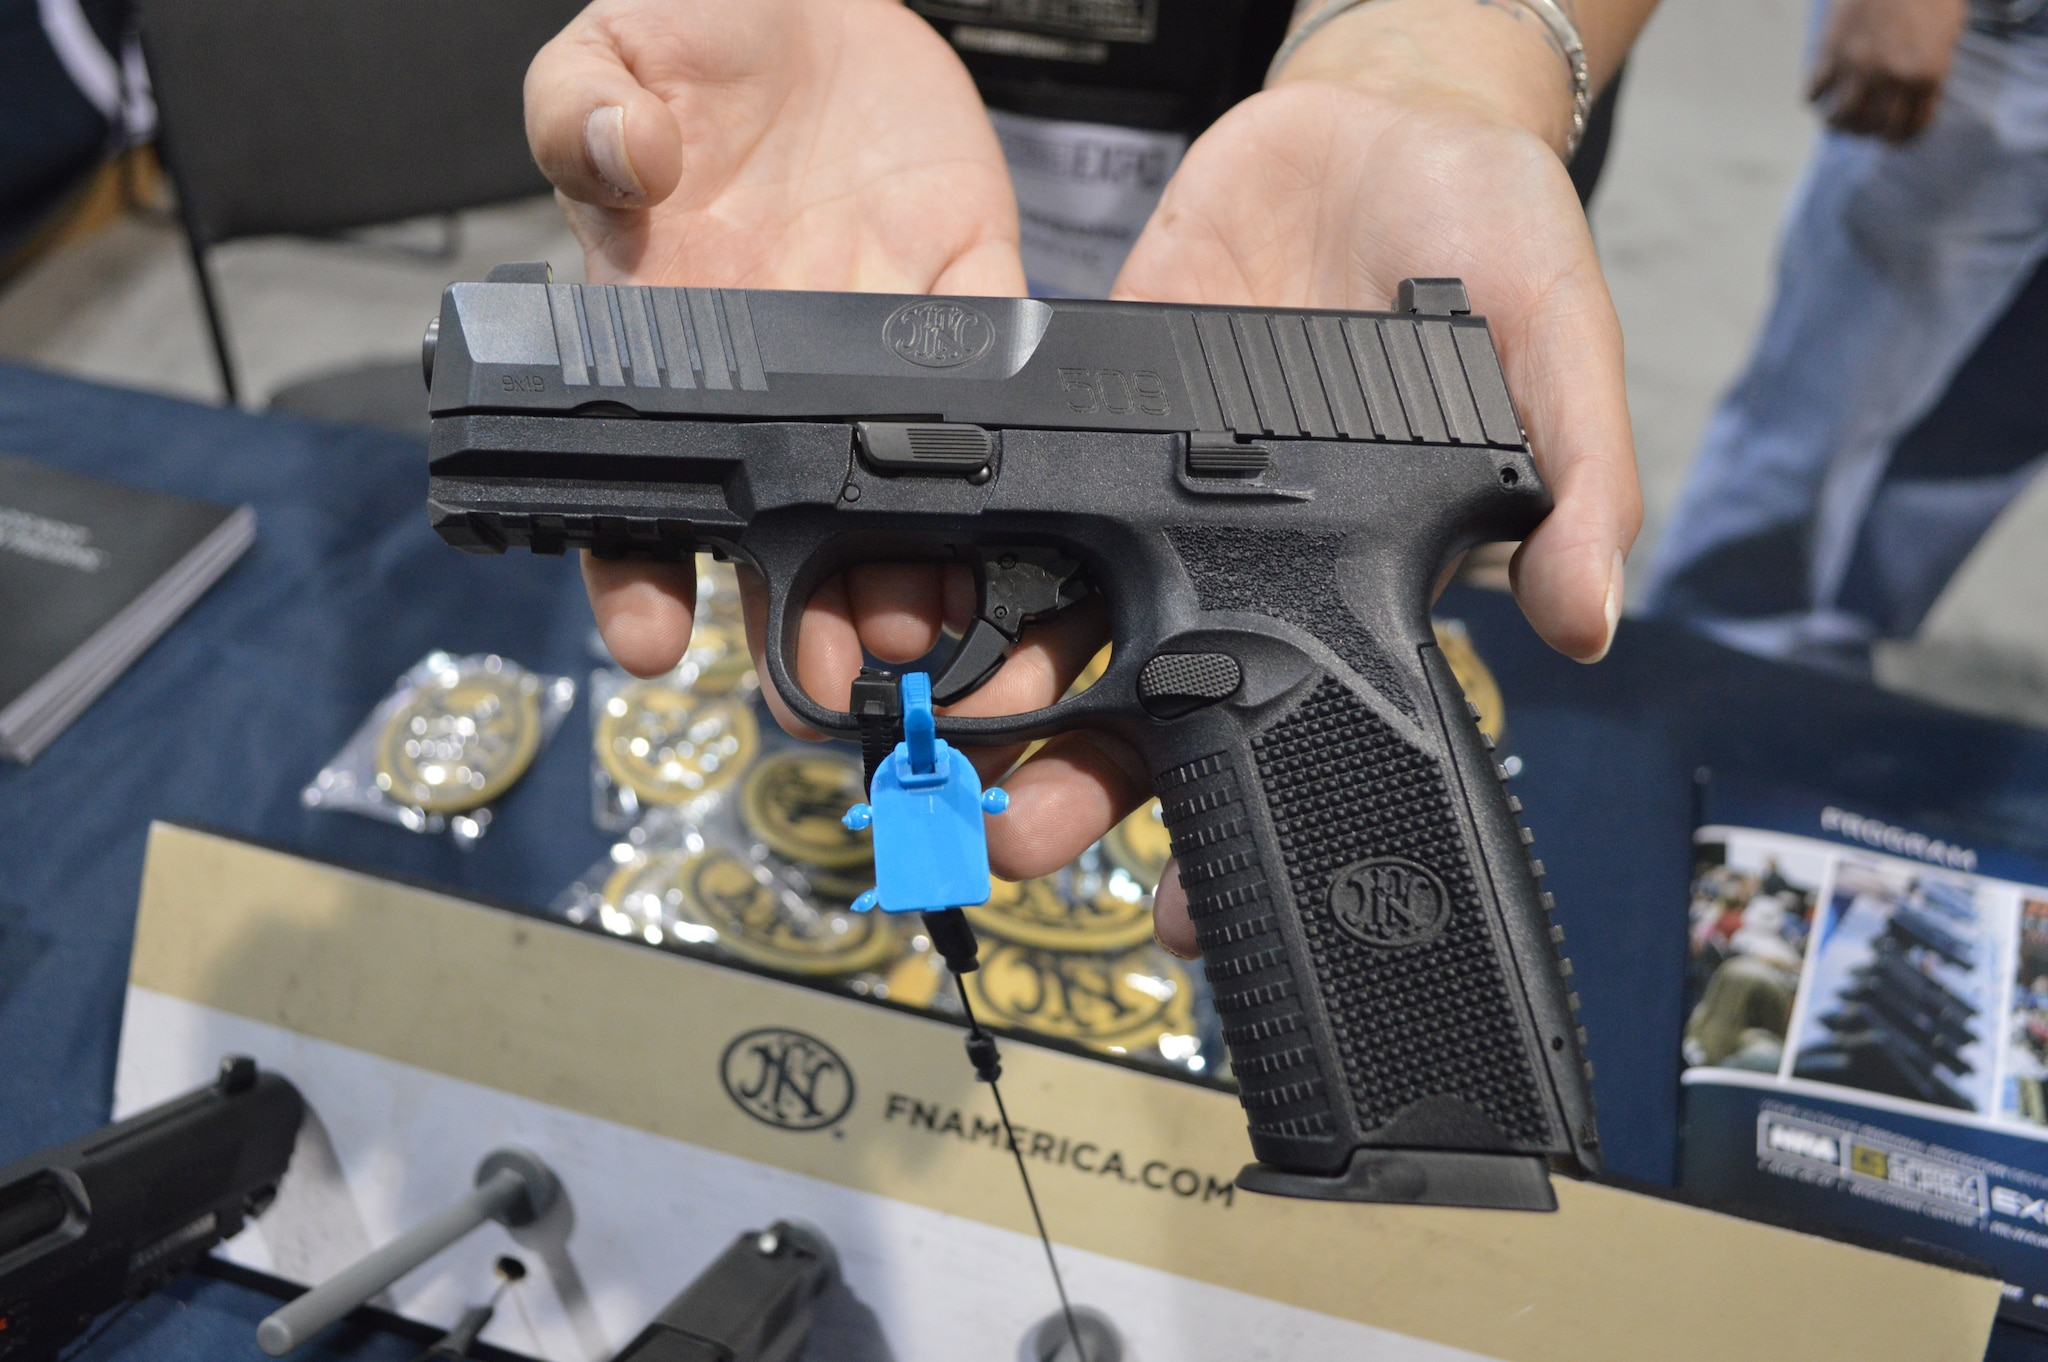 FN-USA displayed a number of pistols at the Expo, but none was as popular as the new 509. The double action 509 is the company's latest LE/Military meets civilian 9mm pistol. (Photo: Kristin Alberts/Guns.com)